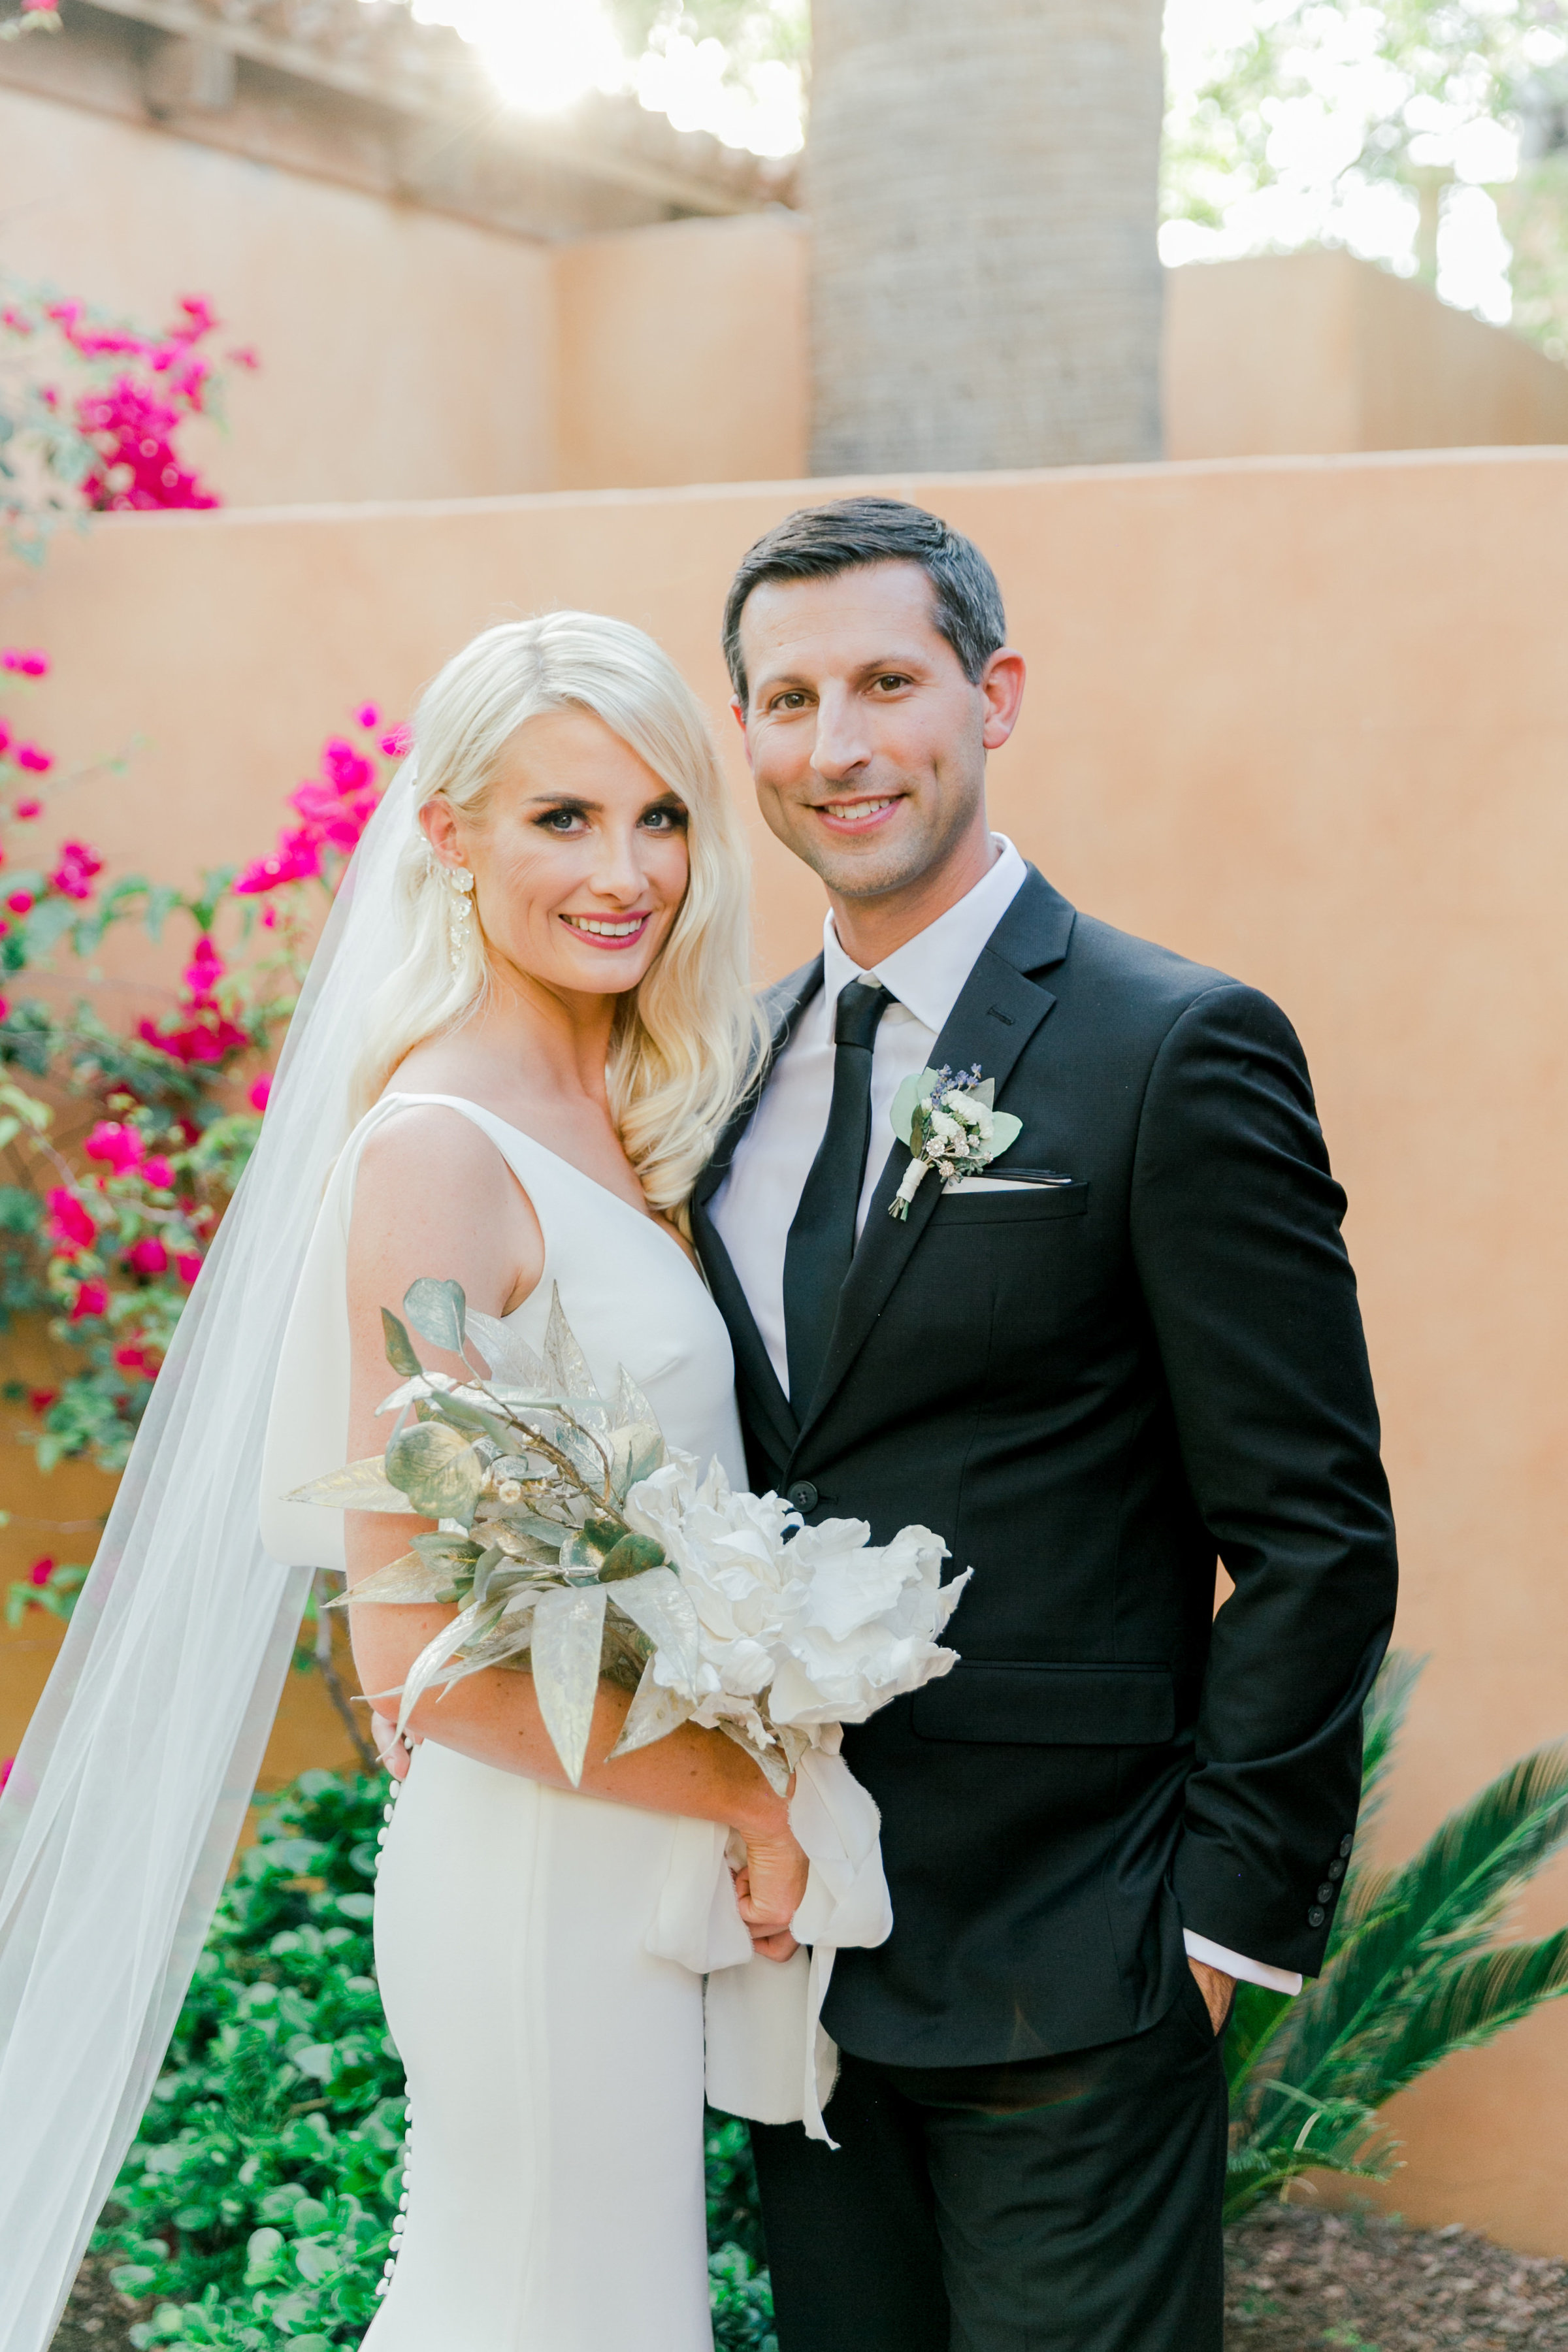 Karlie Colleen Photography - Arizona Wedding - Royal Palms Resort- Alex & Alex-116